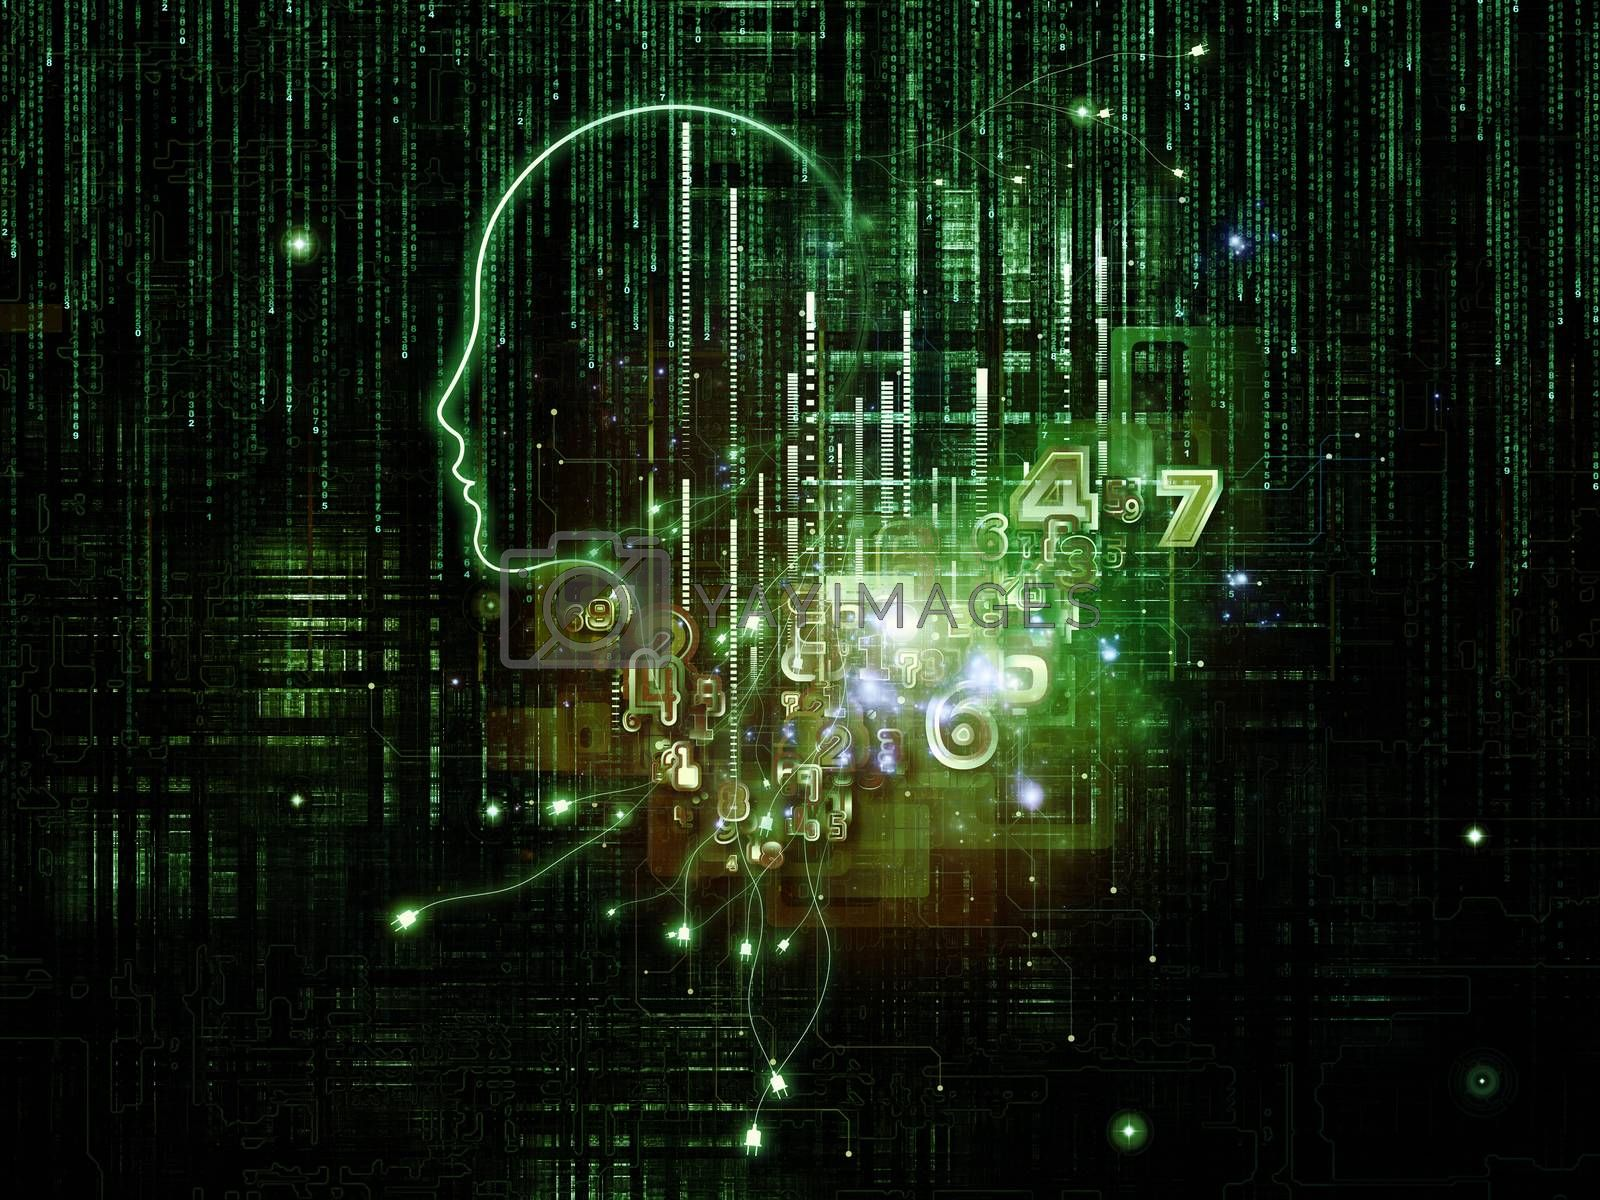 Artificial Intelligence series. Interplay of human profile and numbers on the subject of thinking, logic, computers and future technology